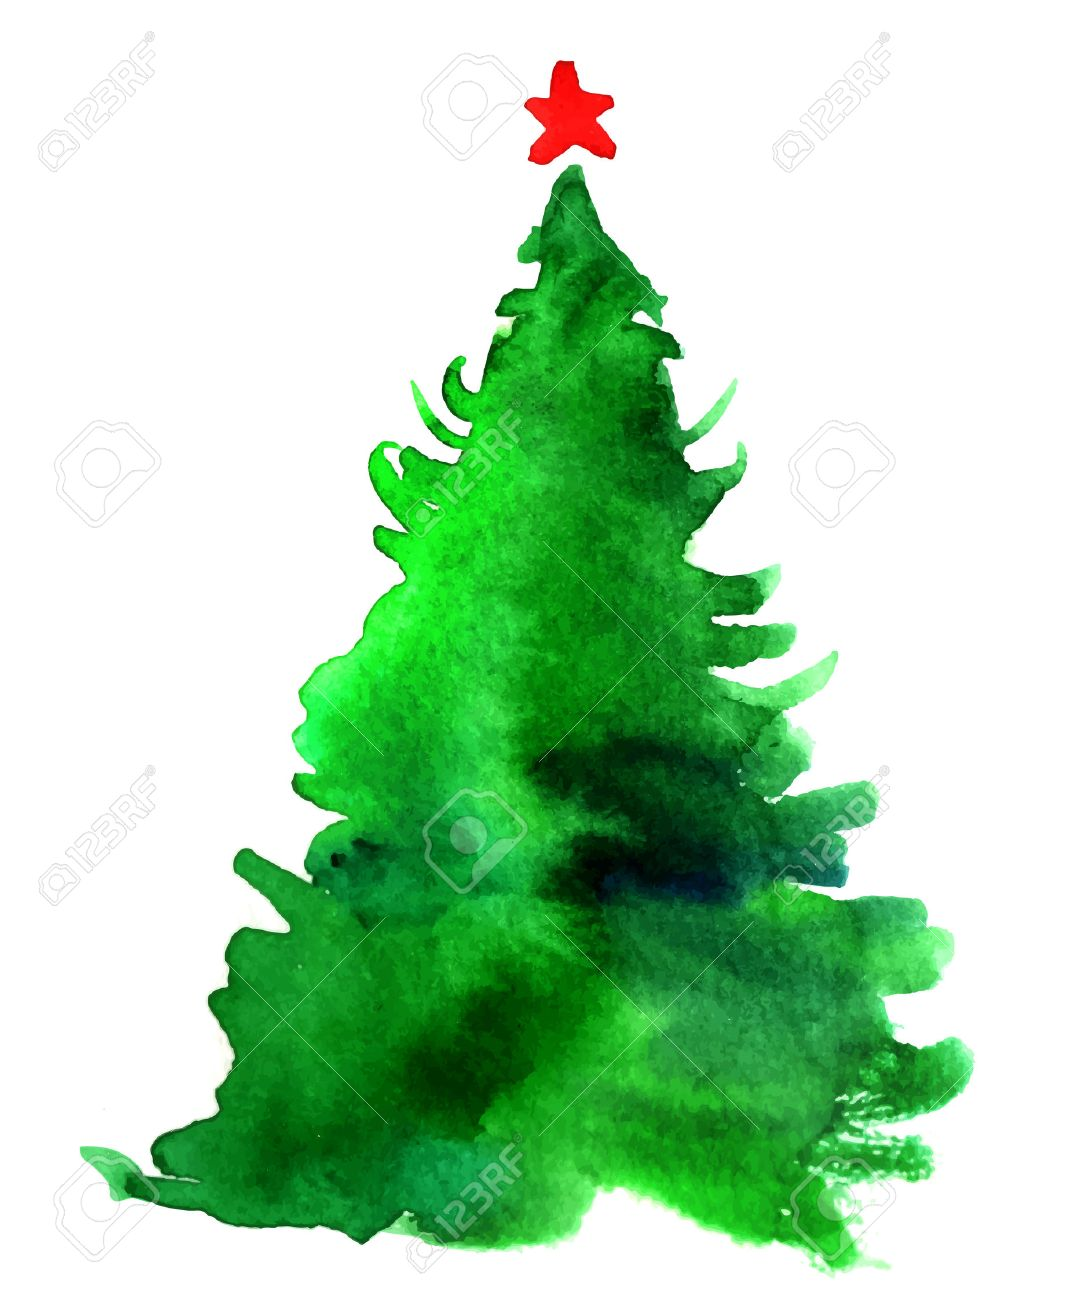 Image Christmas Tree Free.Watercolor Christmas Tree Isolated On A White Background